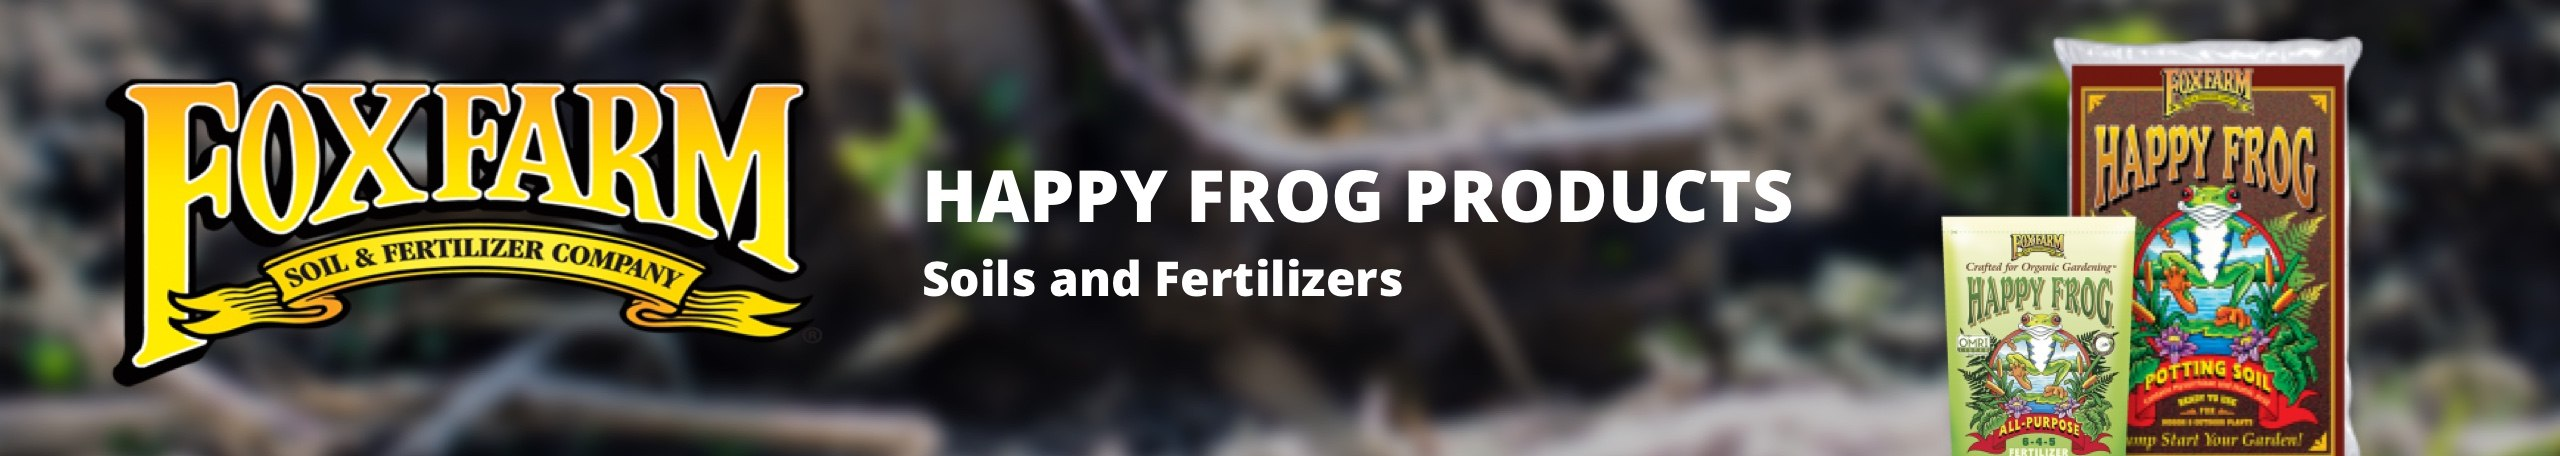 Fox Farm Happy Frog Soils and Fertilizers